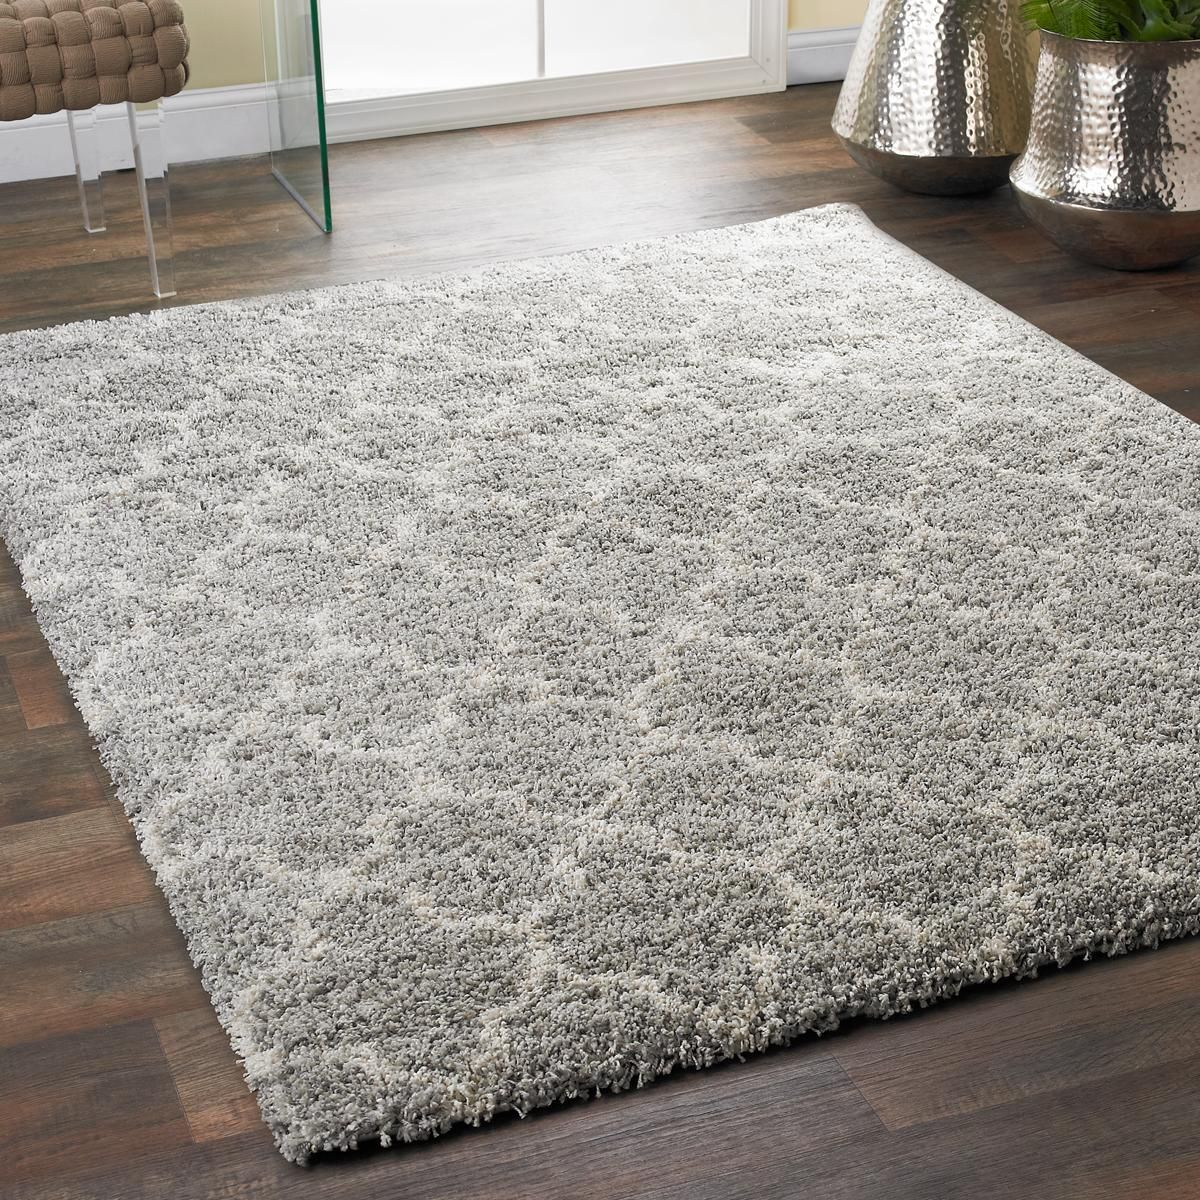 Lofty Trellis Plush Area Rug Plush Area Rugs Rugs In